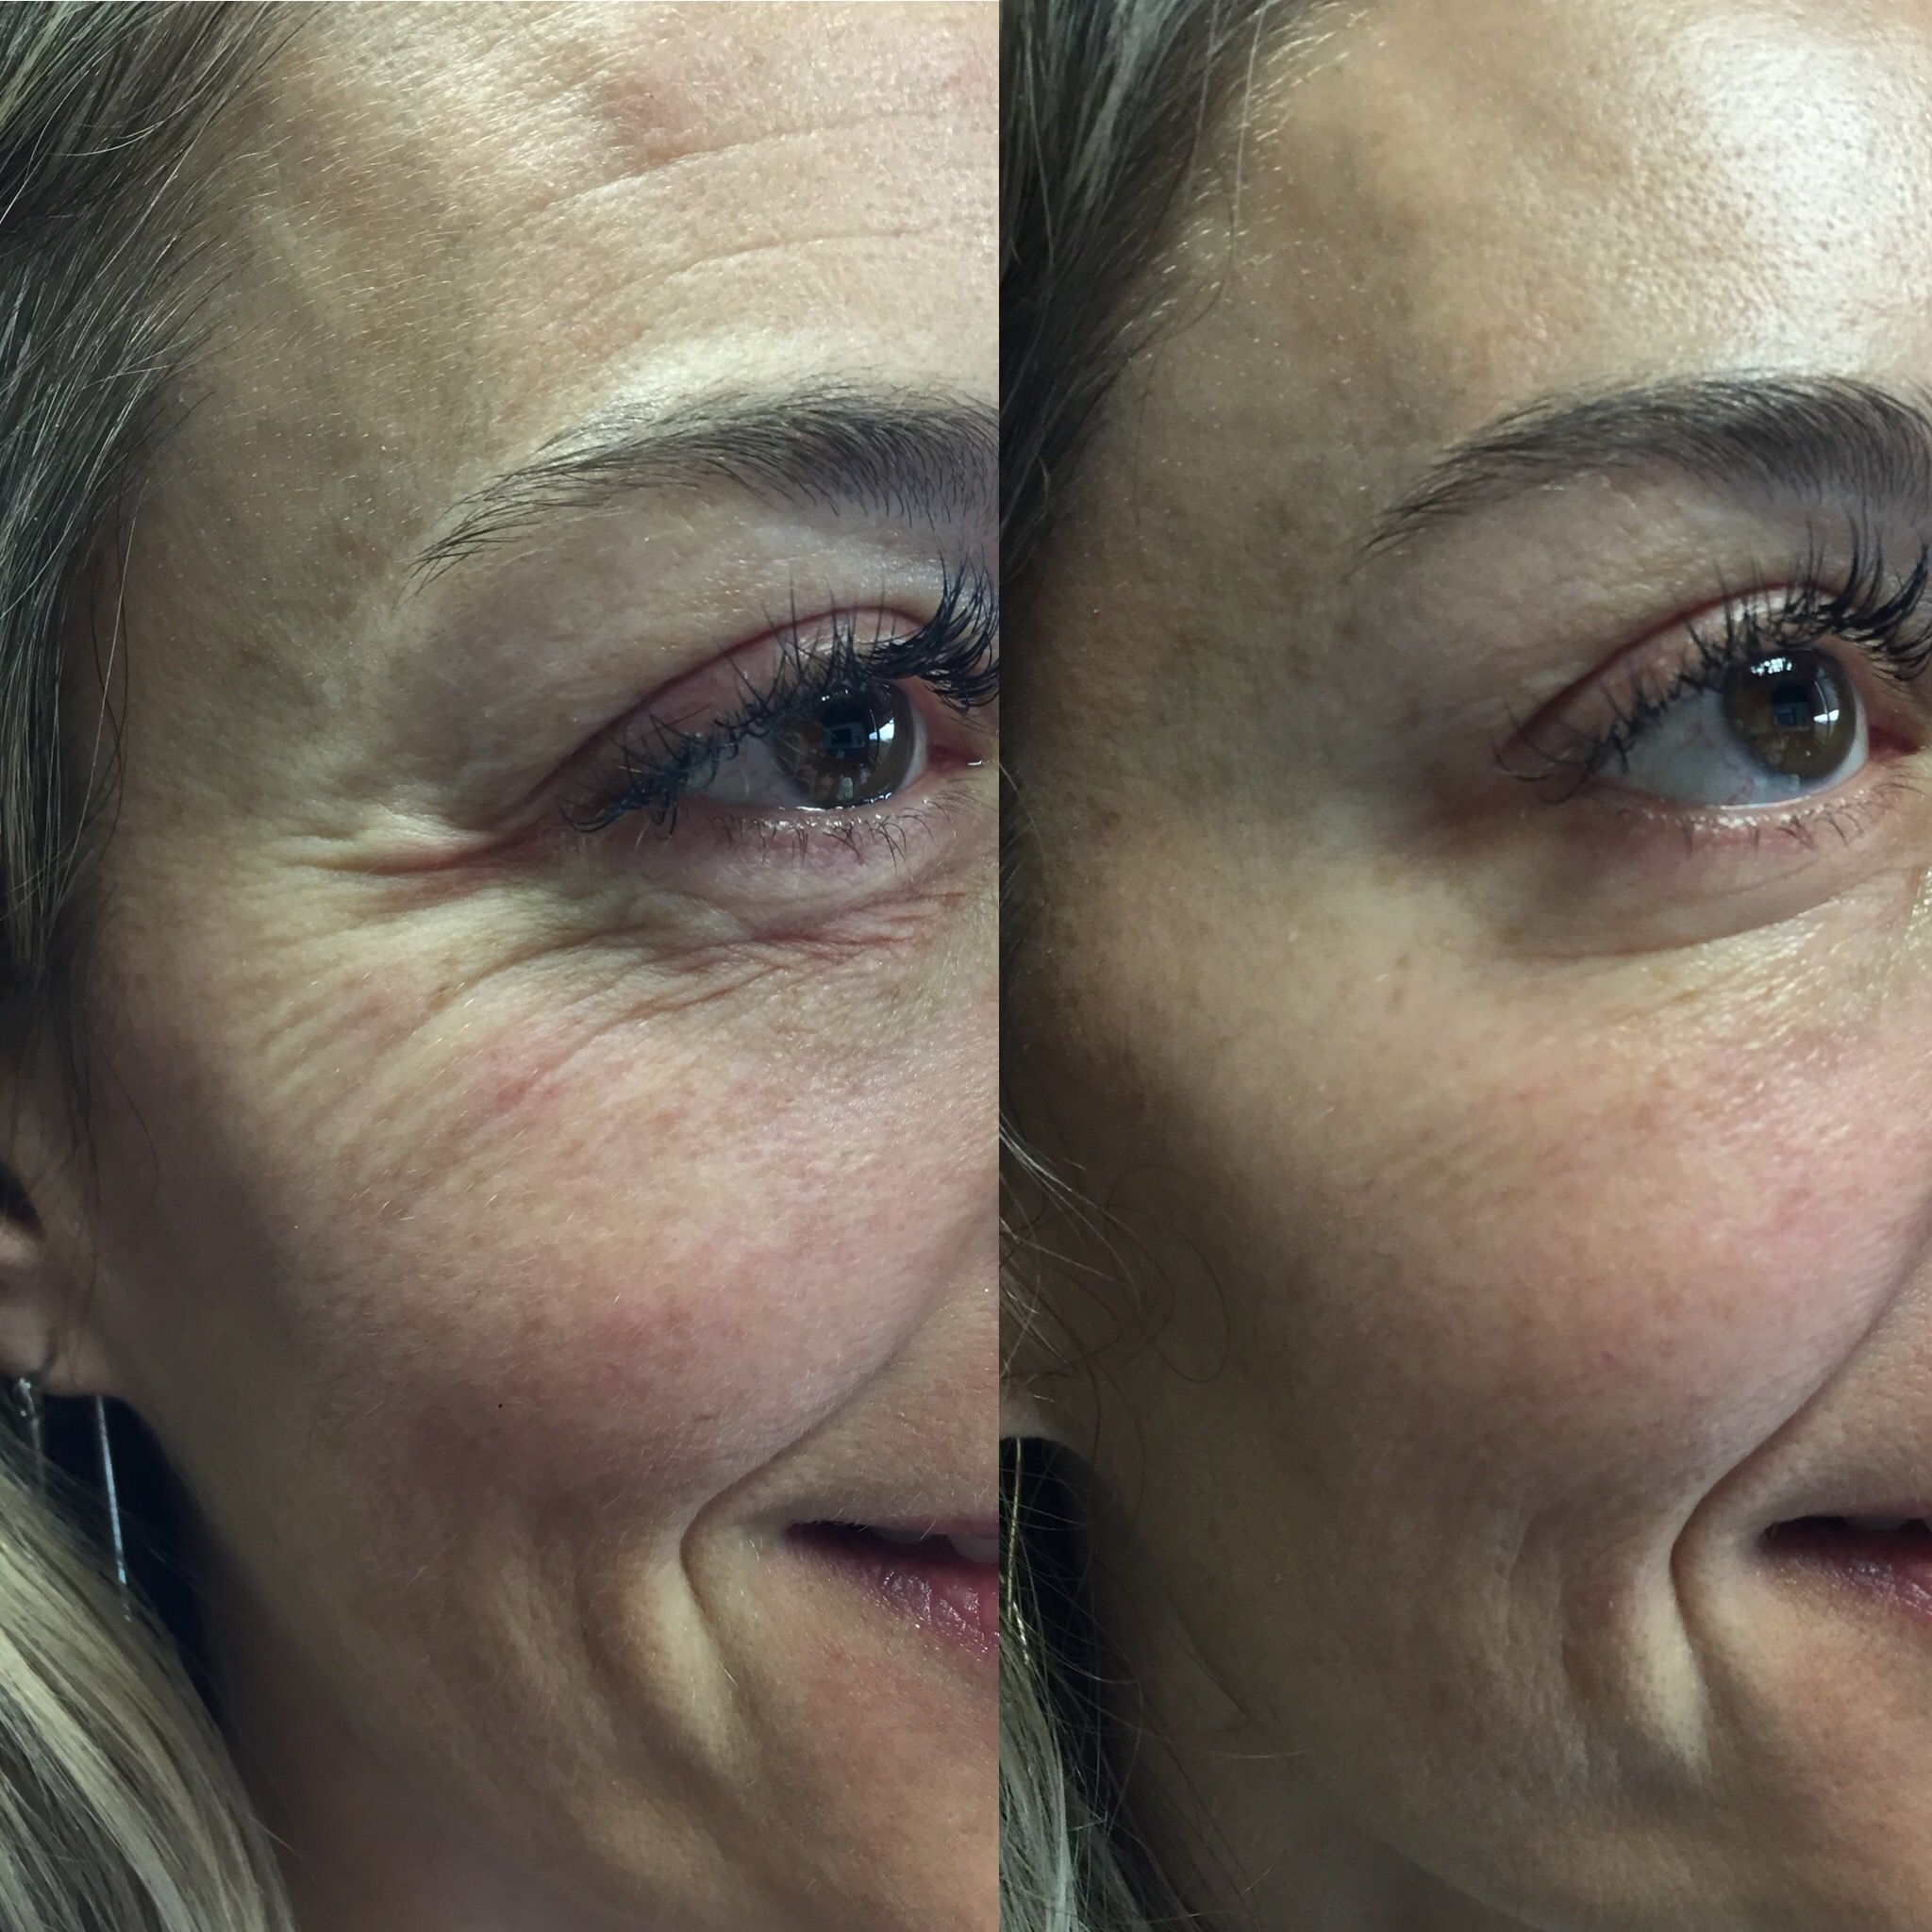 20 Best Botox and Dysport images in 2019 | Dermal fillers